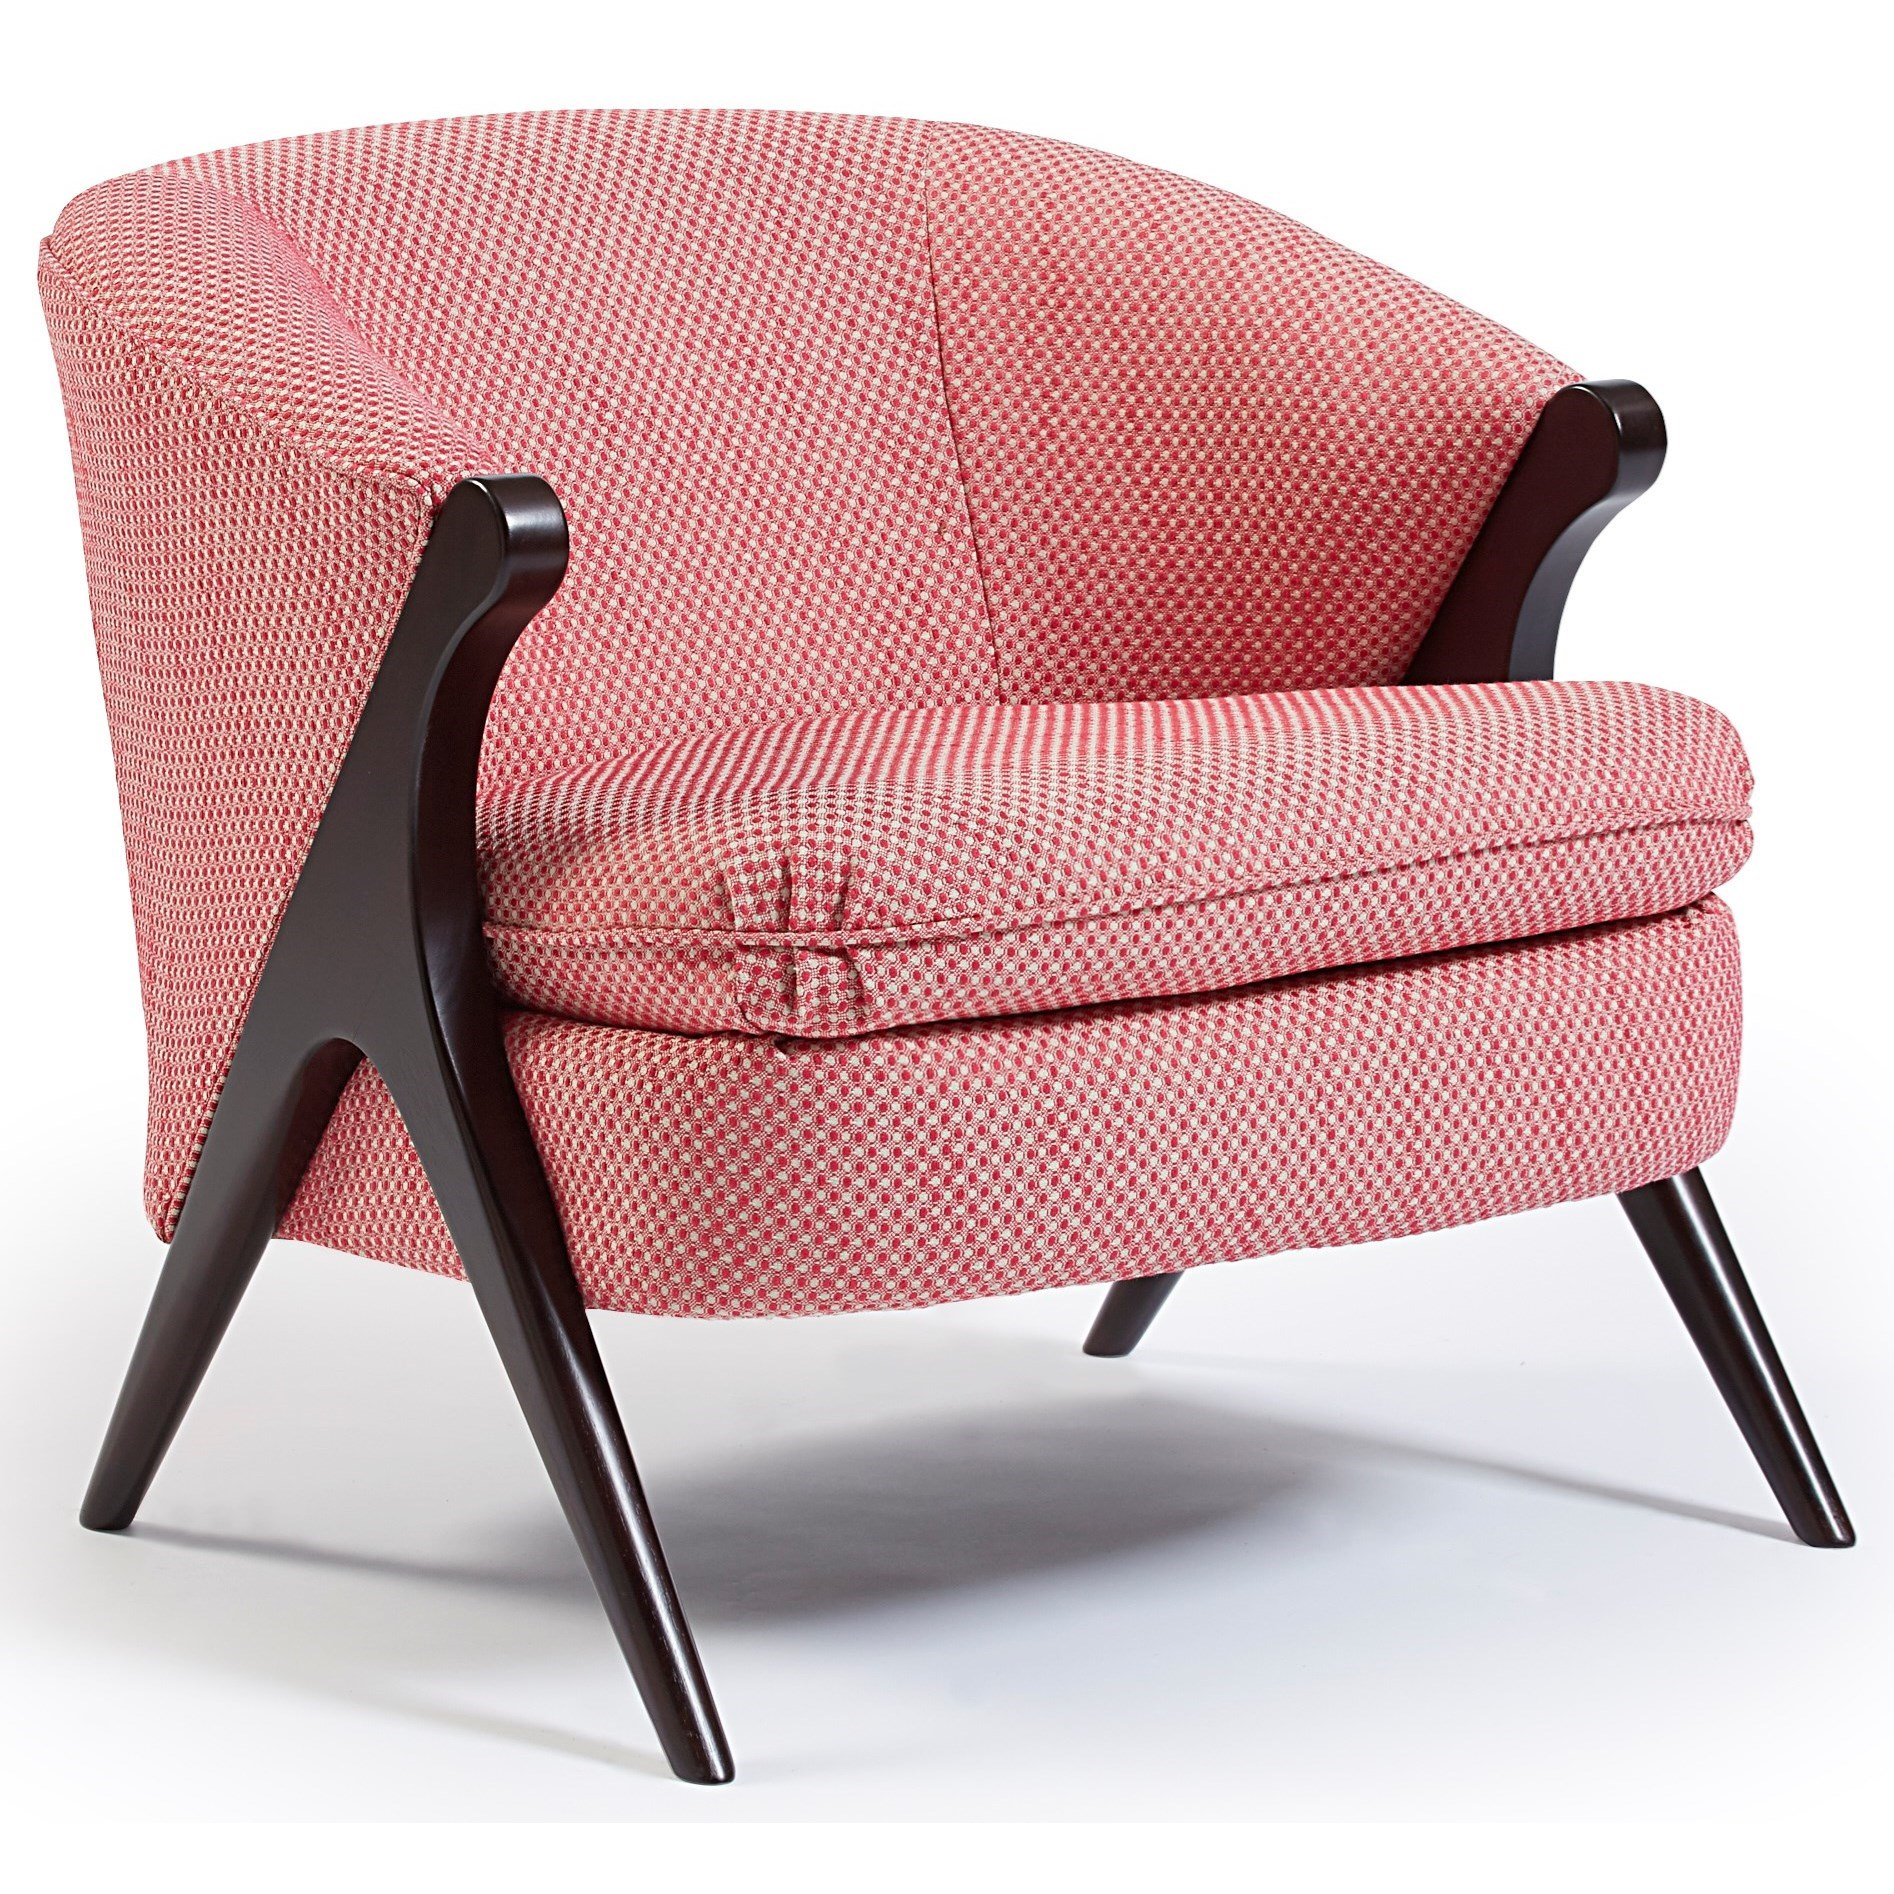 Accent Chairs Tatiana Accent Chair by Best Home Furnishings at Best Home Furnishings